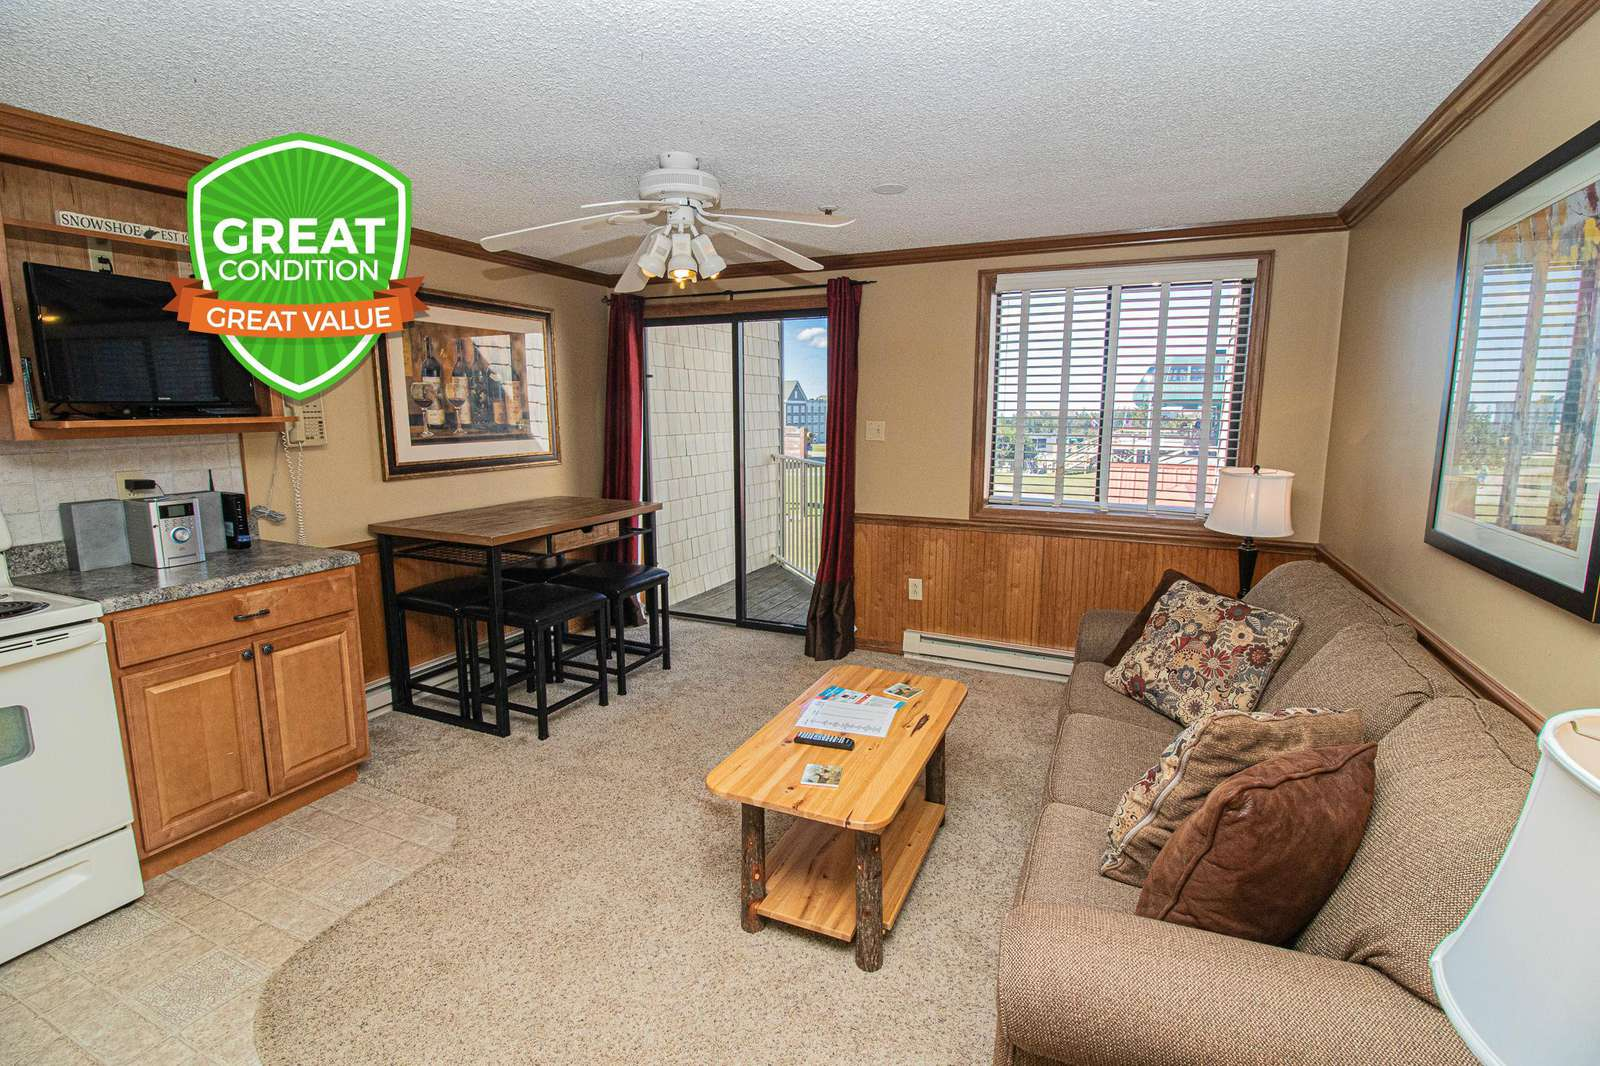 ML228 is your Snowshoe home away from home! Clean & cozy!